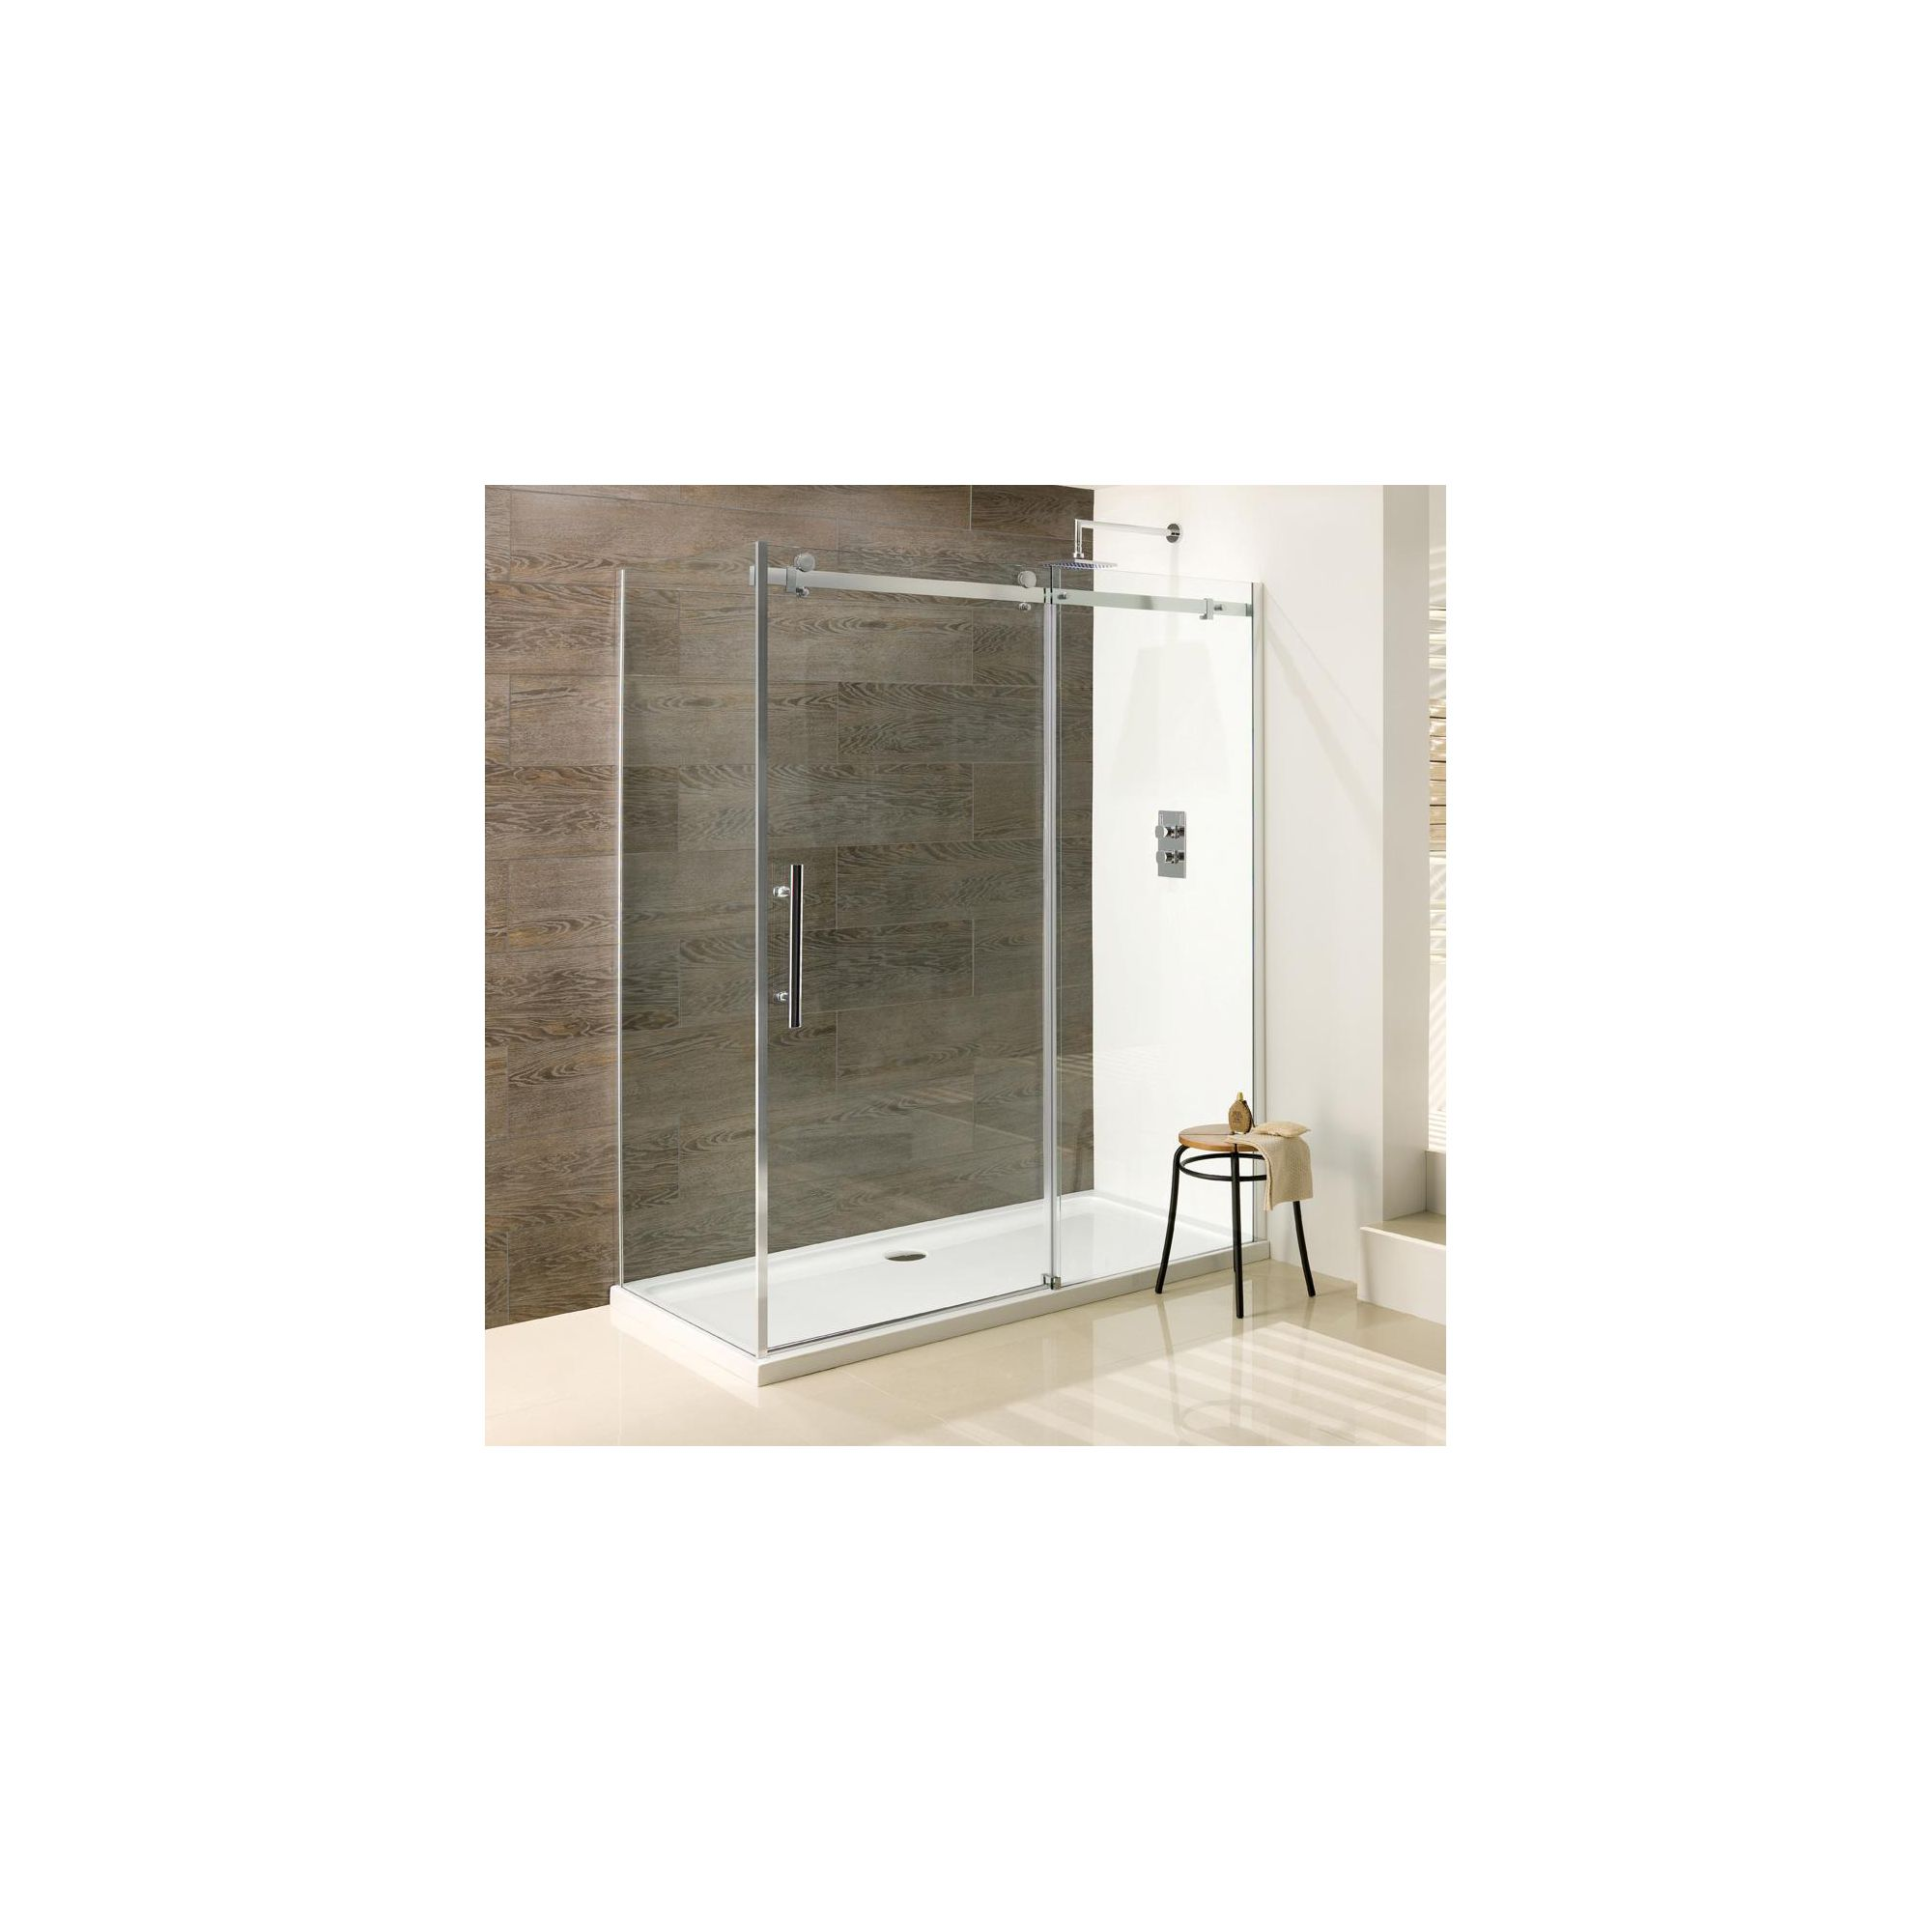 Duchy Deluxe Silver Sliding Door Shower Enclosure with Side Panel 1600mm x 760mm (Complete with Tray), 10mm Glass at Tescos Direct